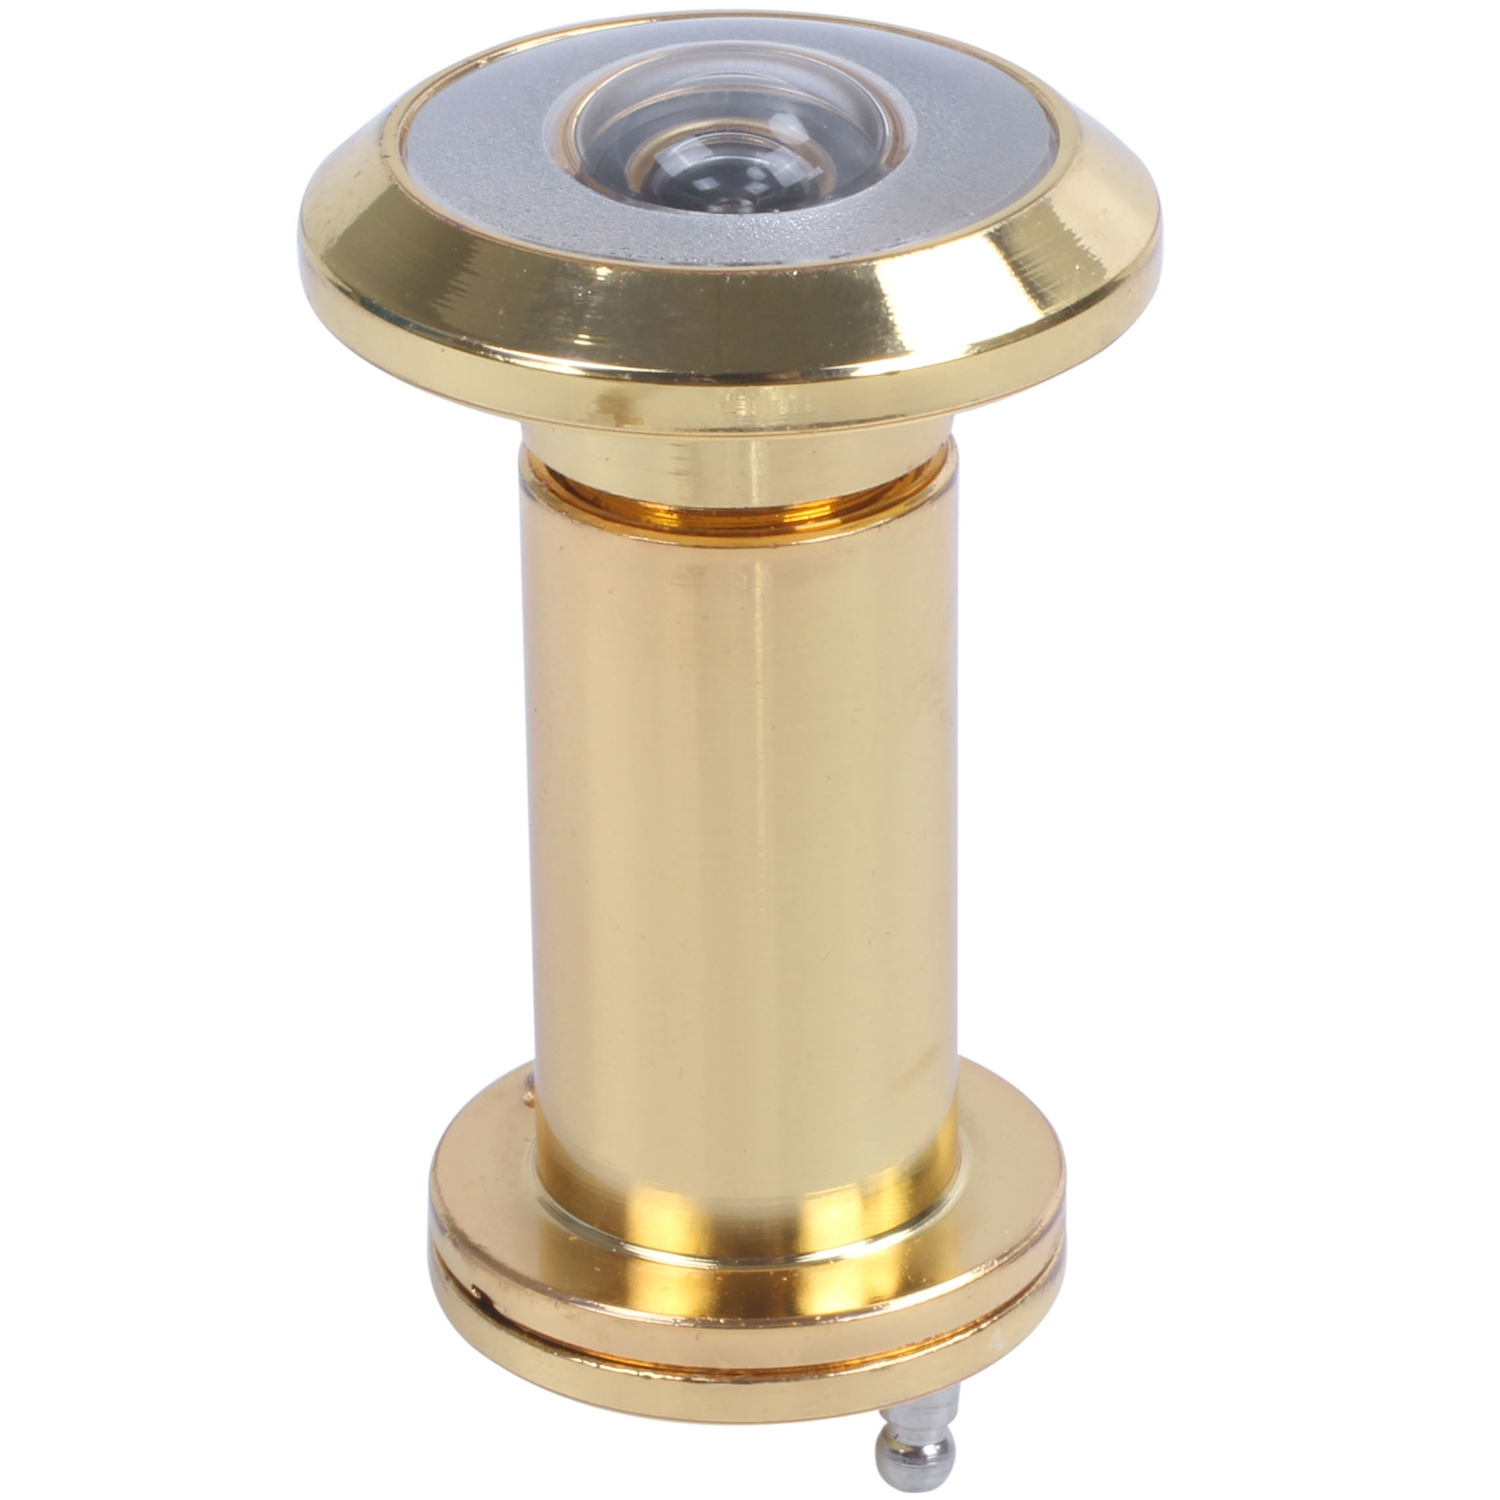 Adjustable 200 Degree Wide Angle Door Viewer Brass Scope Peephole Home Security